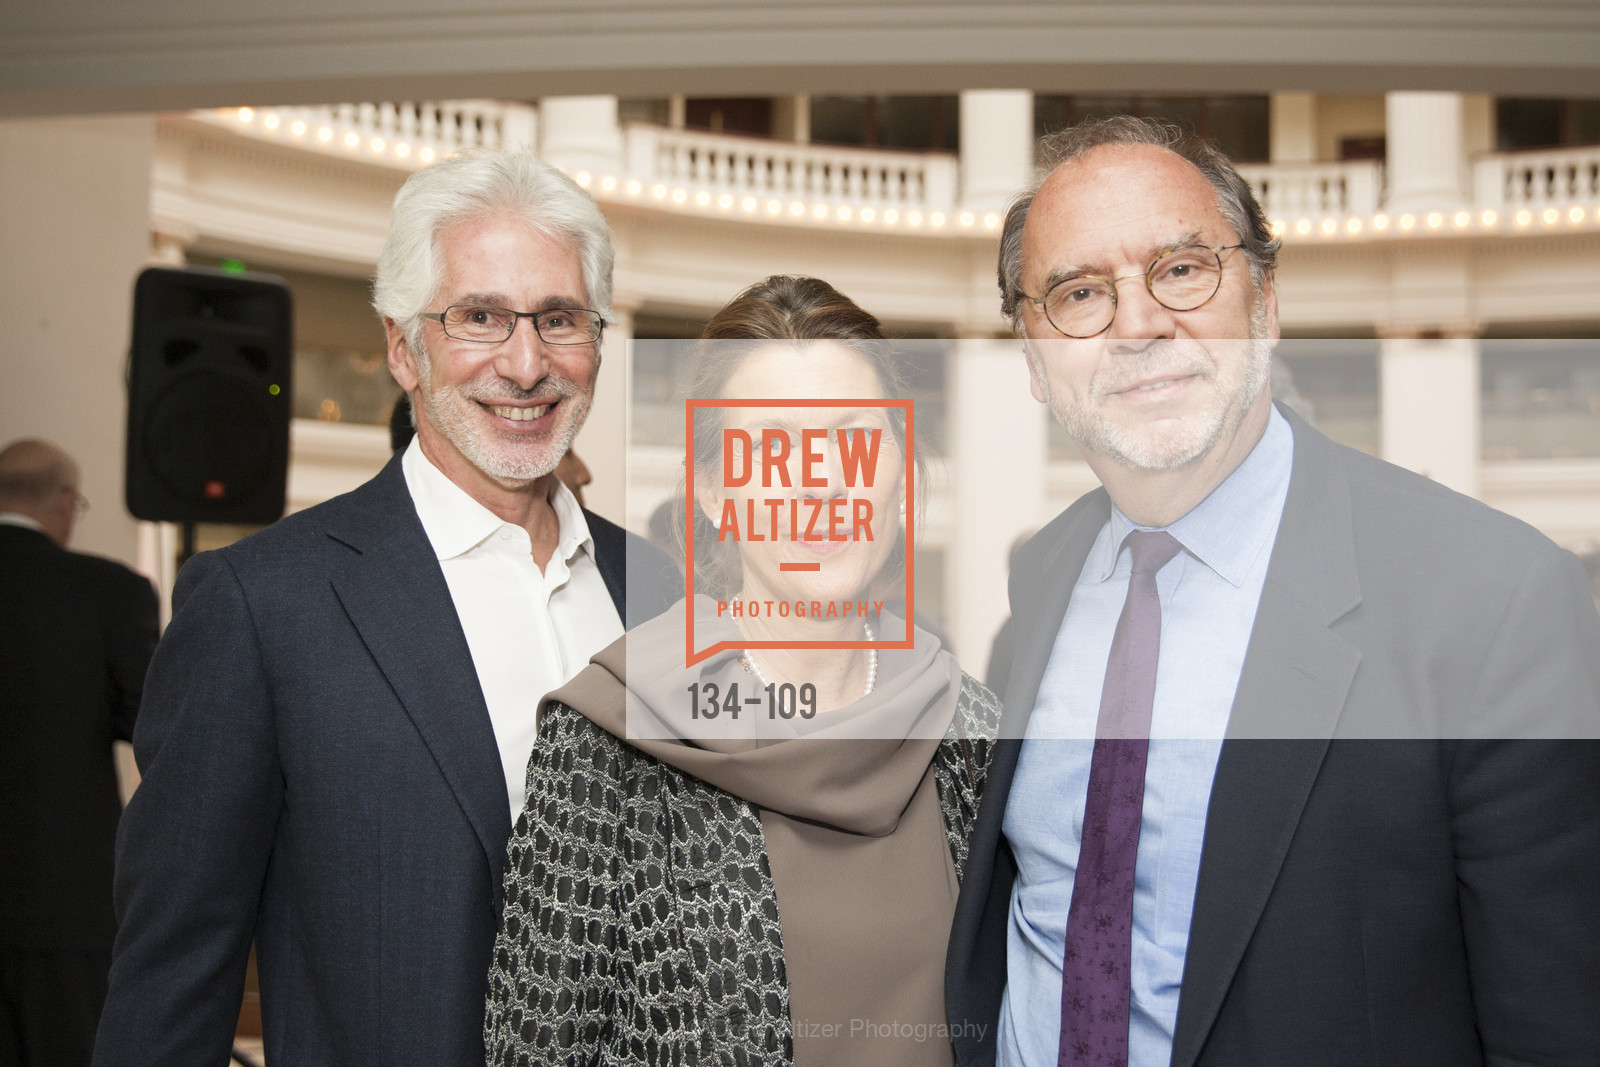 Stephen Becker, Heidi Rosen, Peter Piot, PANGAEA GLOBAL HEALTH Leadership Dinner at Rotunda in Oakland, The Rotunda. Oakland, May 11th, 2015,Drew Altizer, Drew Altizer Photography, full-service agency, private events, San Francisco photographer, photographer california